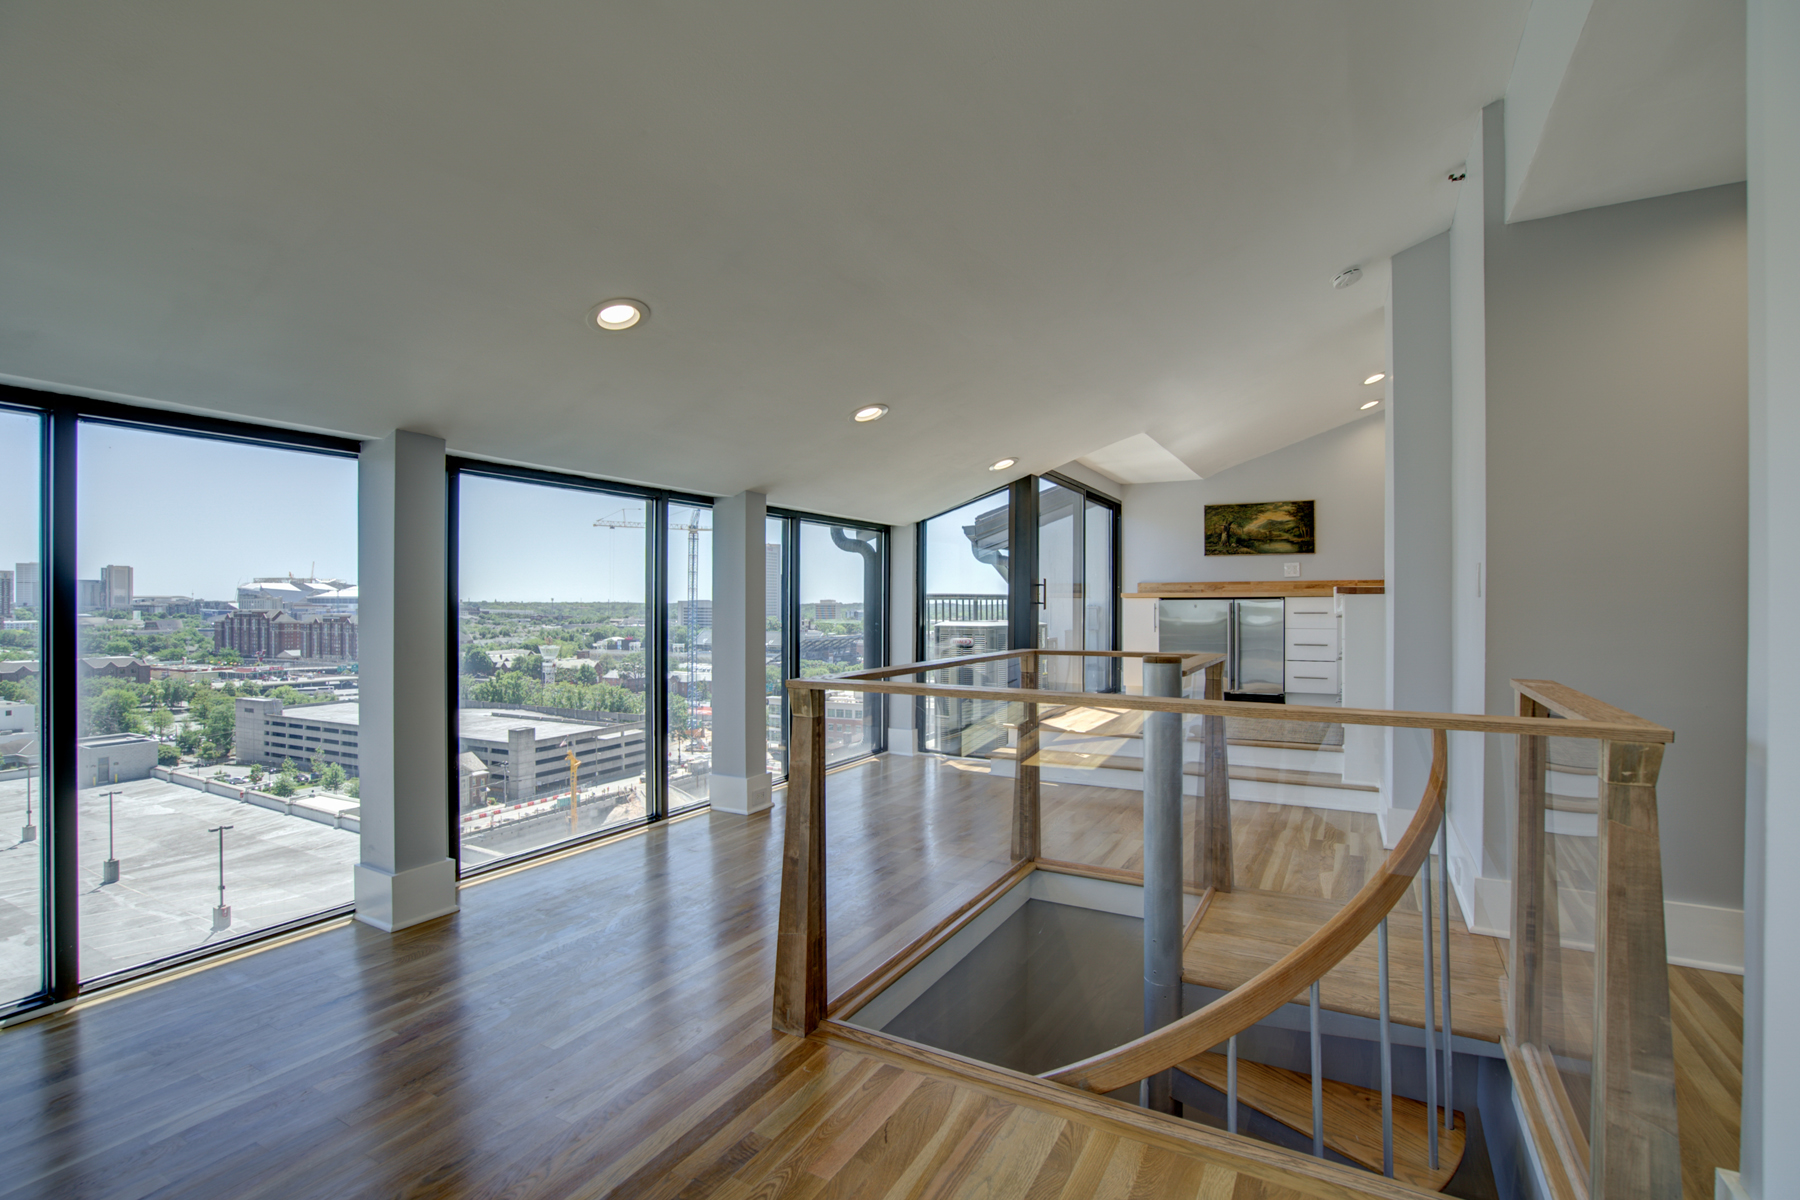 Condomínio para Venda às Exceptional Double Penthouse With Luxurious Living On Three Levels 30 5th Street NE Unit 1001 Atlanta, Geórgia 30308 Estados Unidos